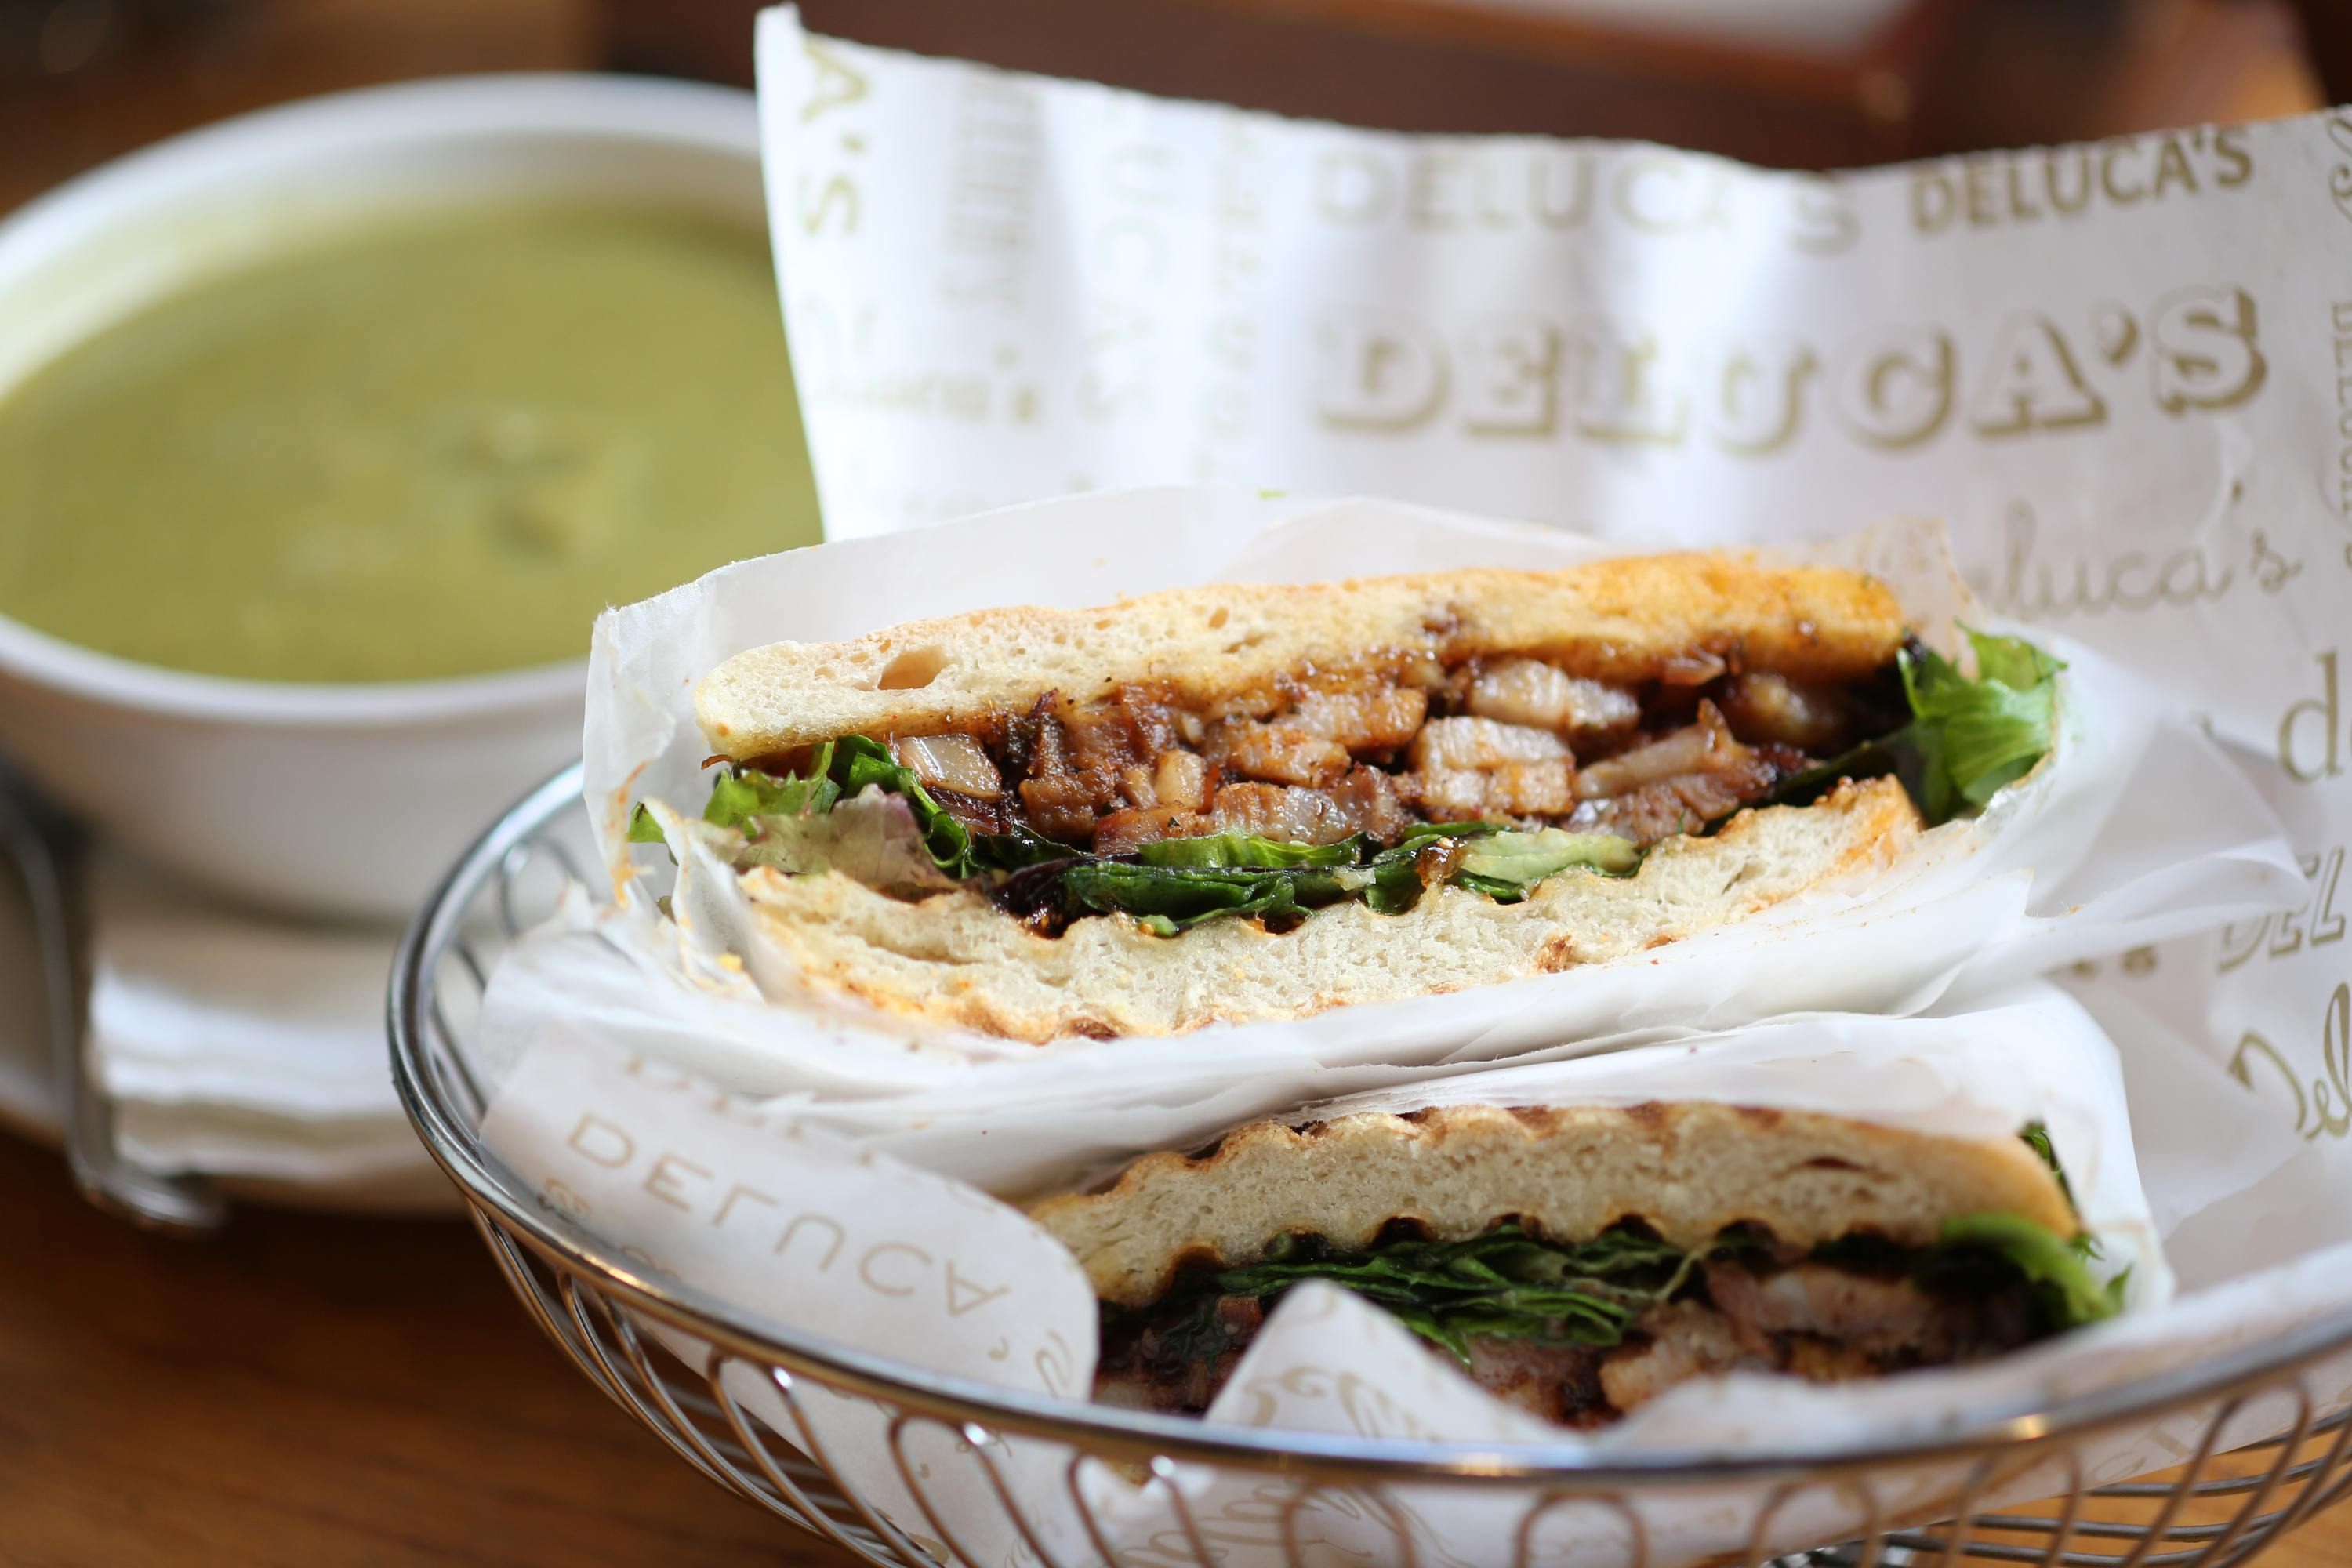 Deluca's at The Americana at Brand